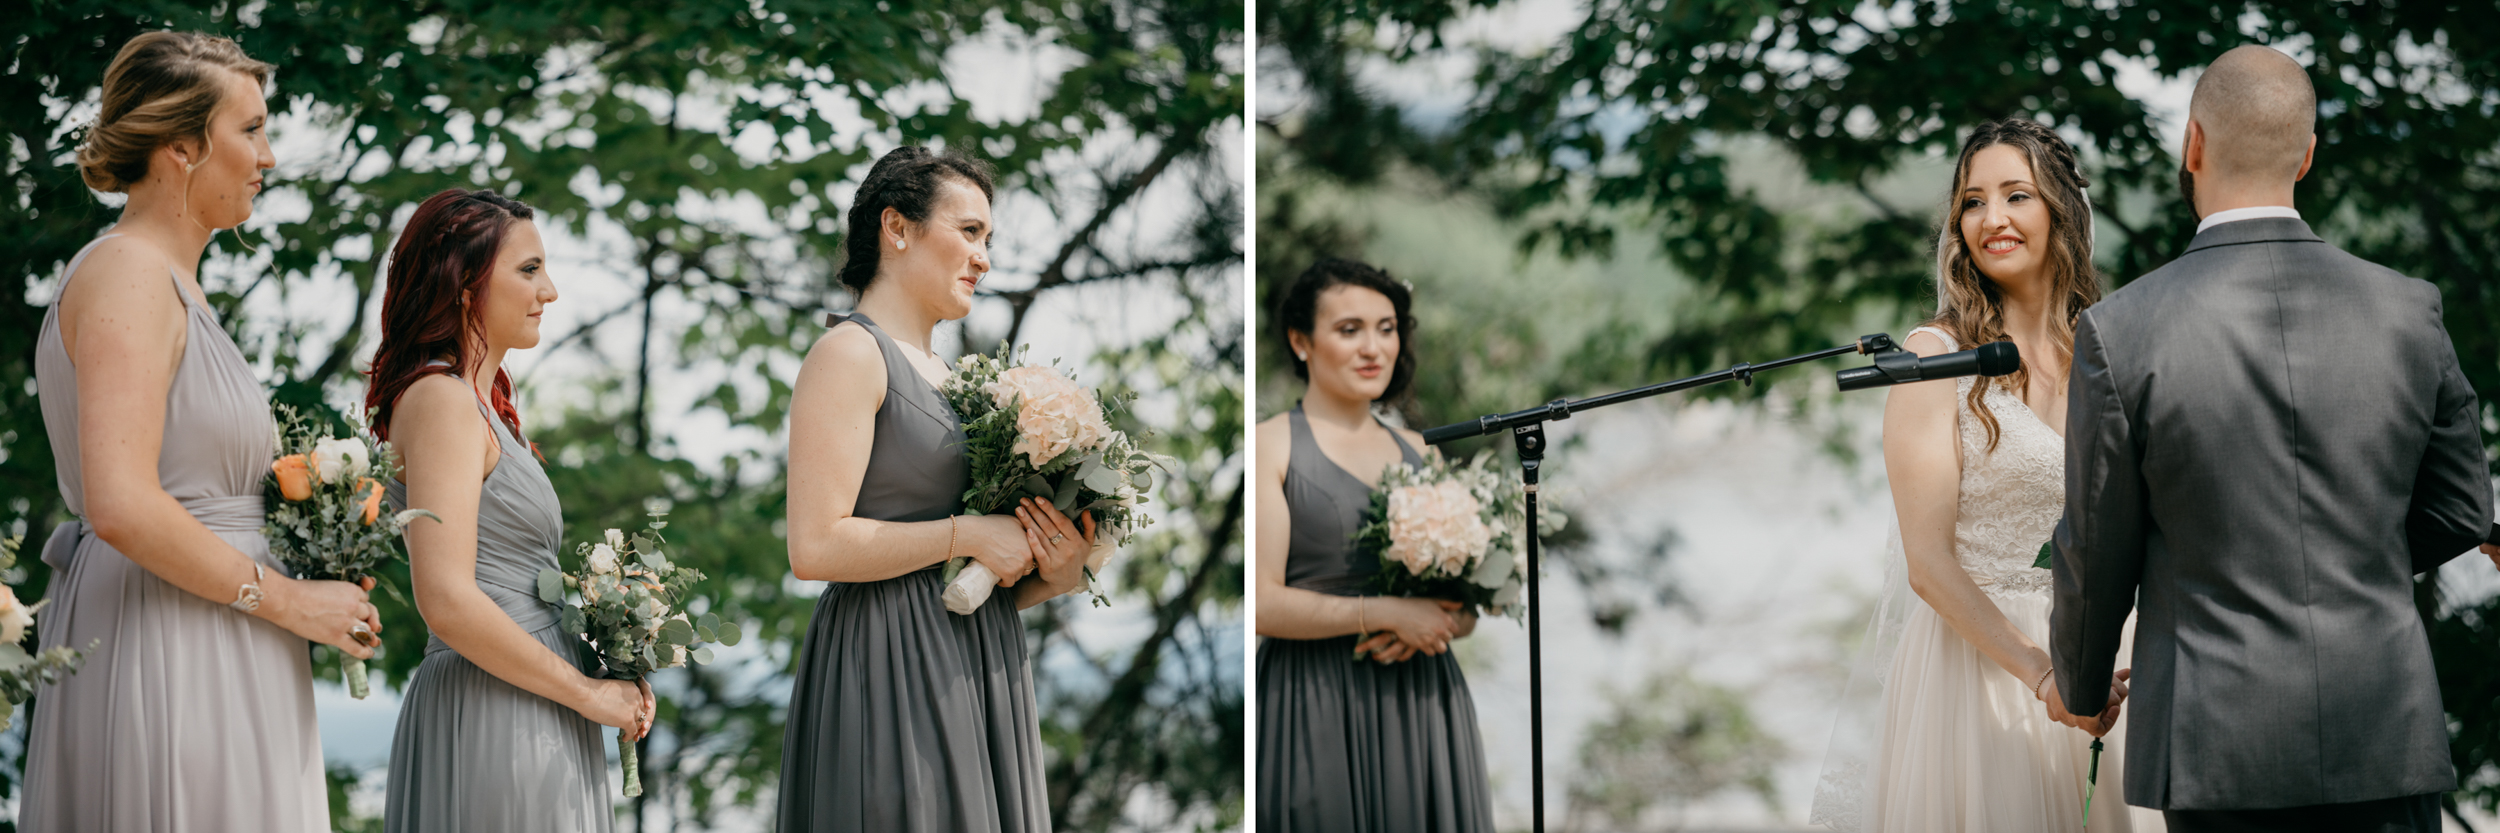 Becca_Adam_Camp_Camulet_Summer_Camp_wedding_Ossipee_New_Hampshire_018.jpg